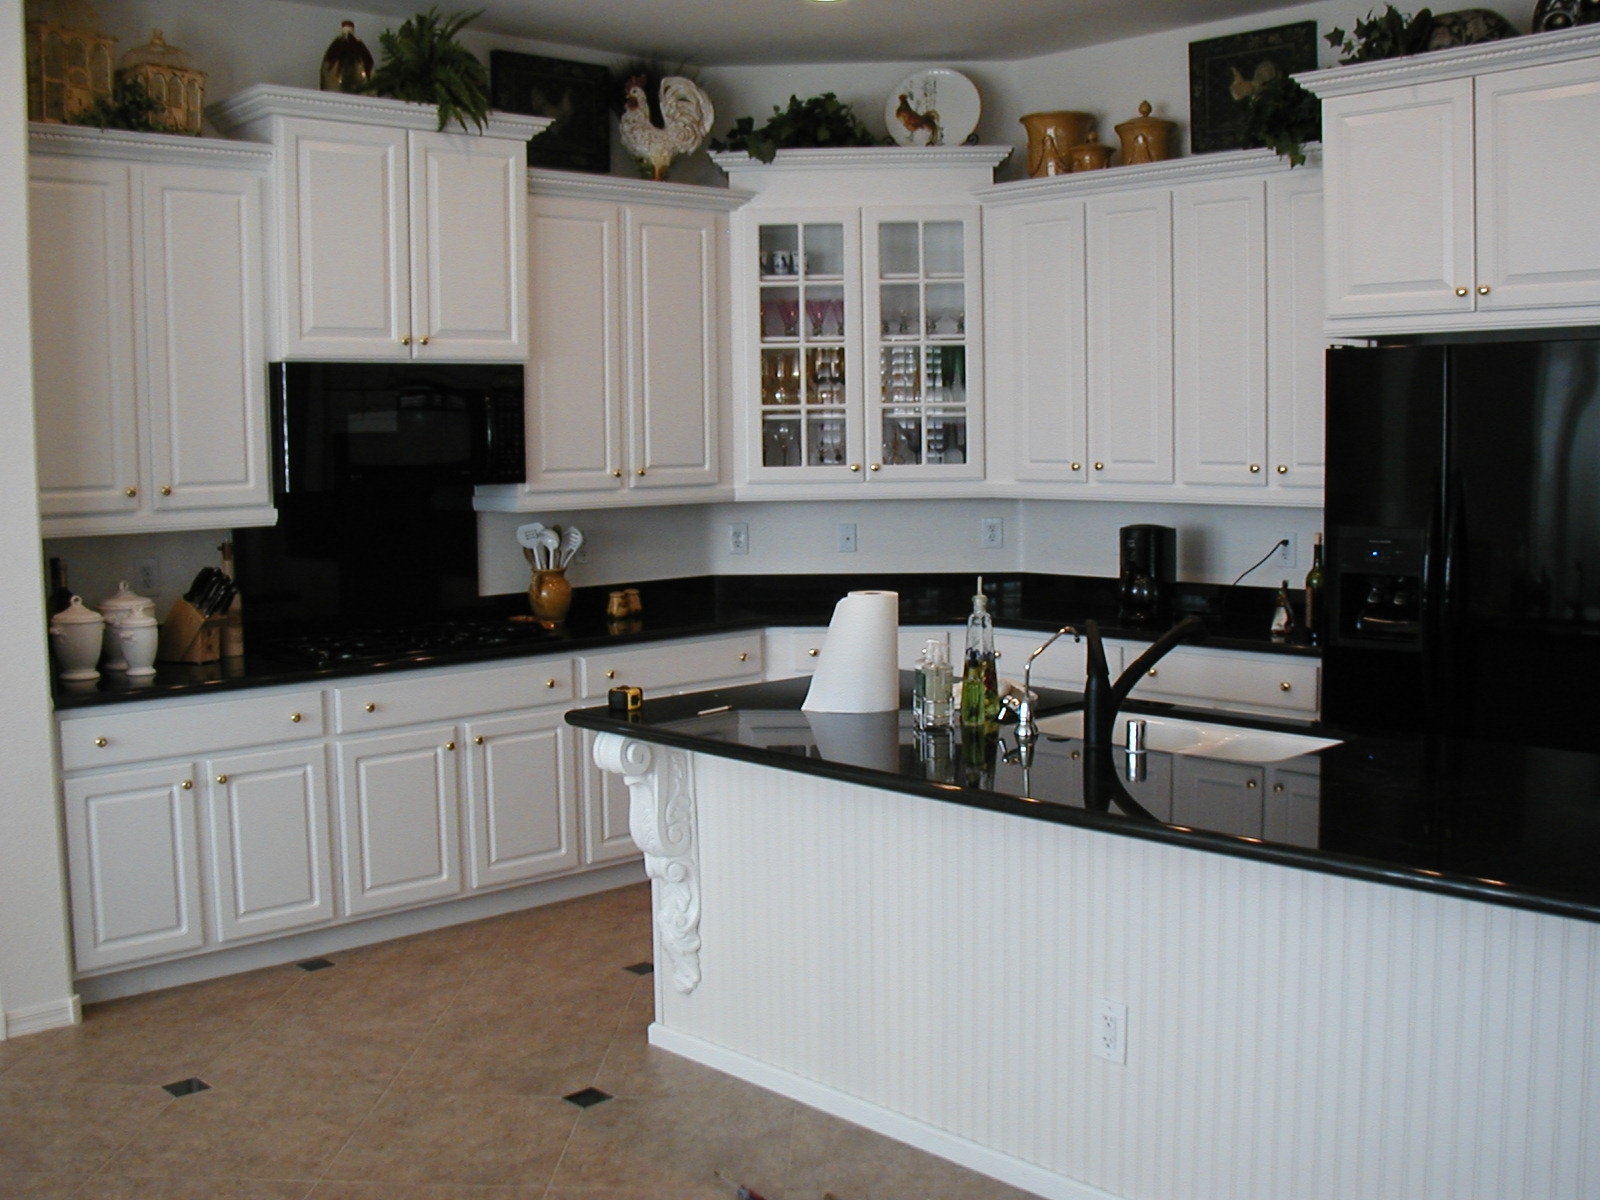 Hmh designs white kitchen cabinets timeless and transcendent - White kitchen cabinet ideas ...